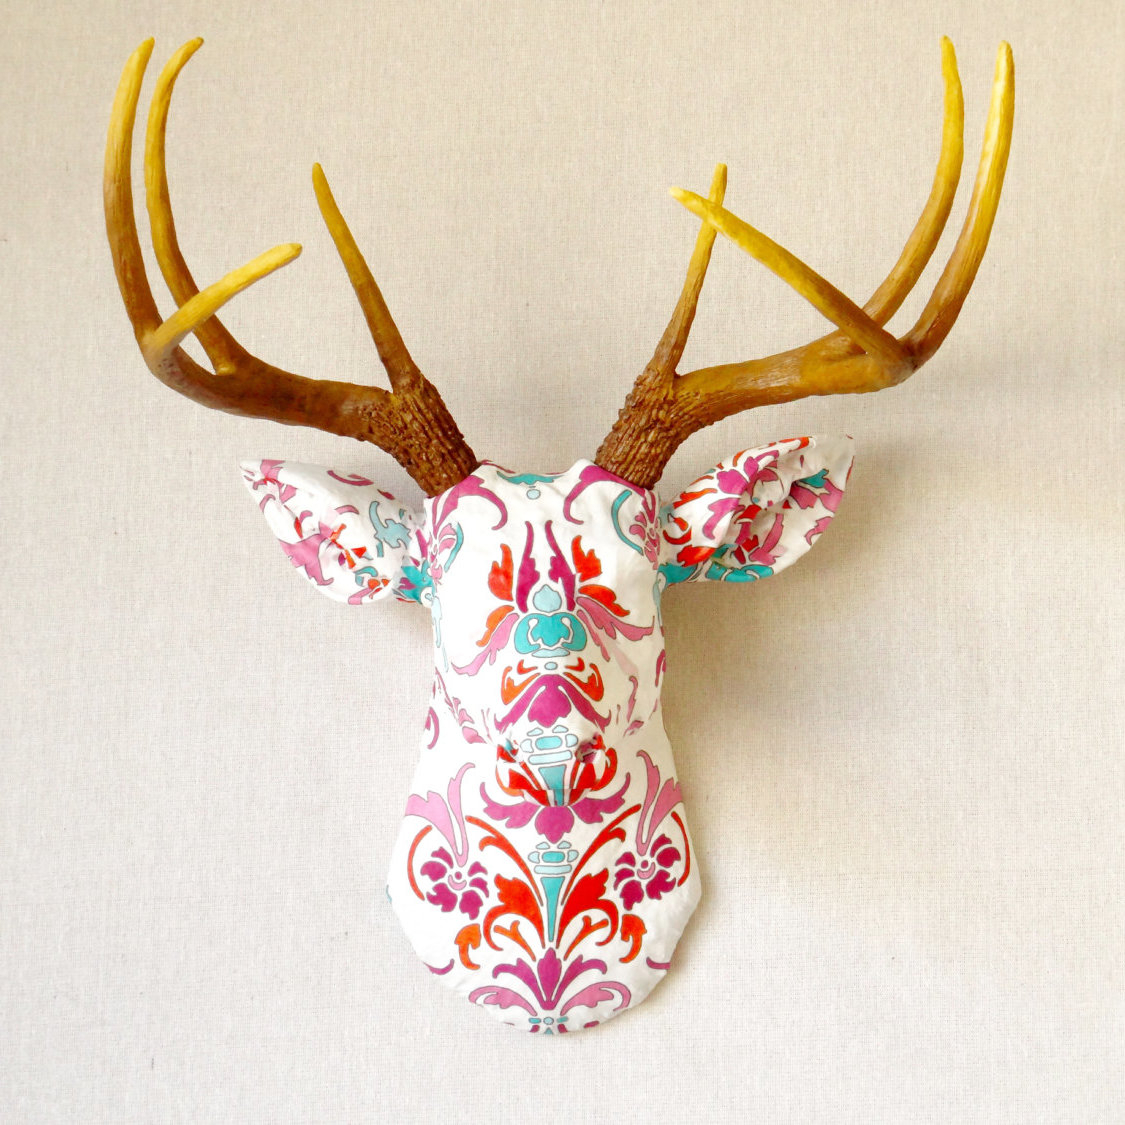 Bungalow Rose Faux Taxidermy Authentic Fabric Deer Head Wall Décor Pertaining To Popular Atlantis Faux Taxidermy Wall Decor (Gallery 12 of 20)